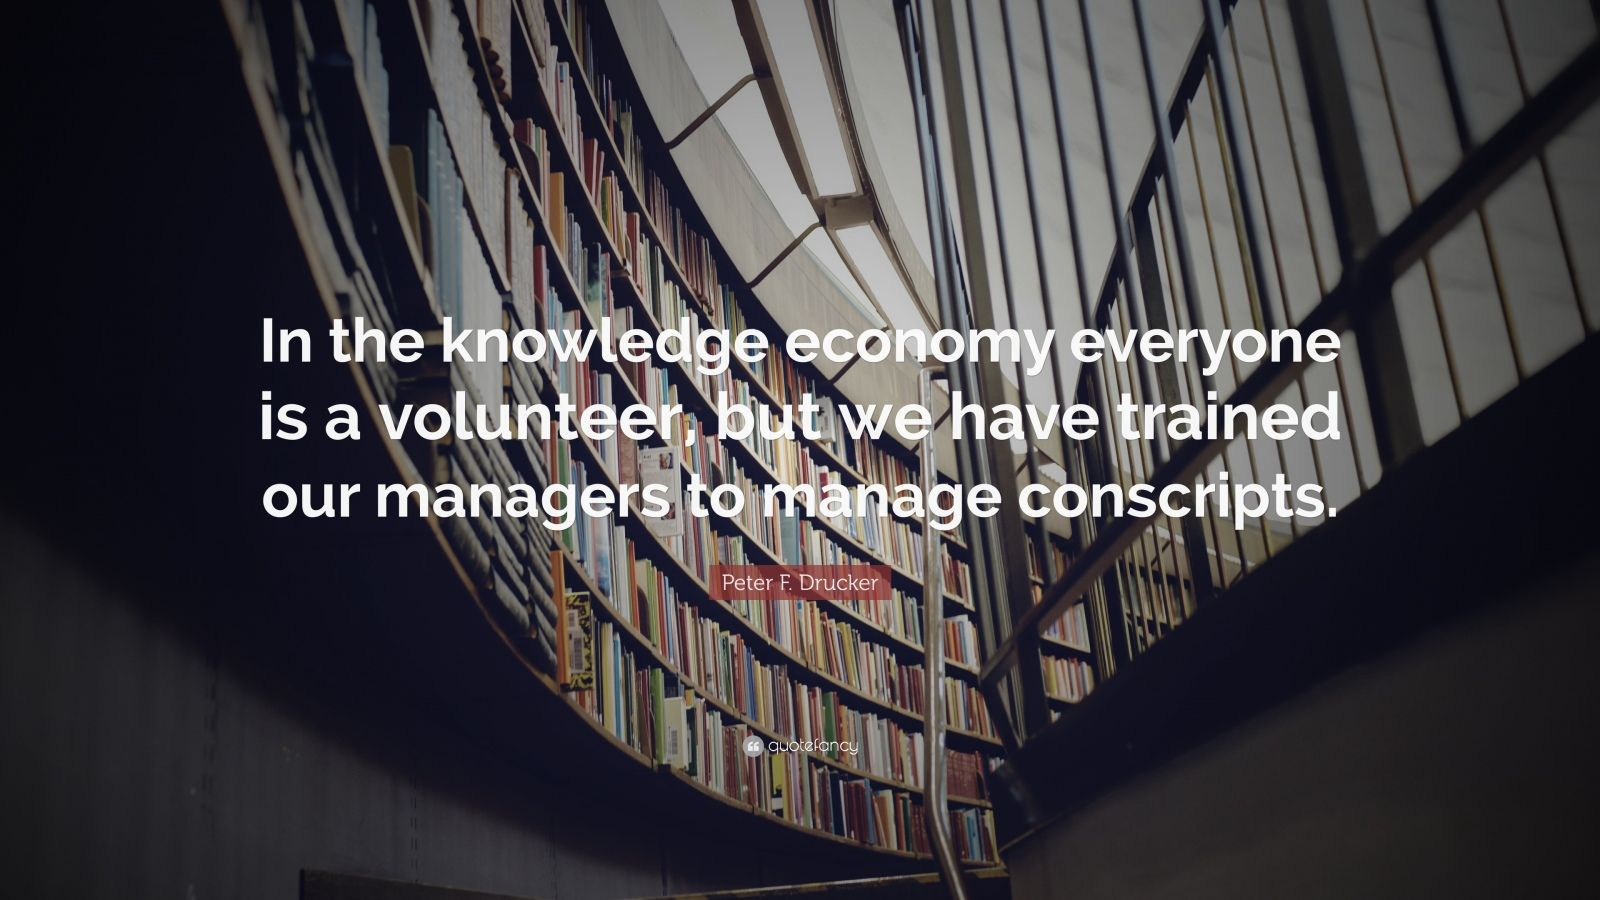 """Peter F. Drucker Quote: """"In the knowledge economy everyone is a volunteer, but we have trained our managers to manage conscripts."""""""